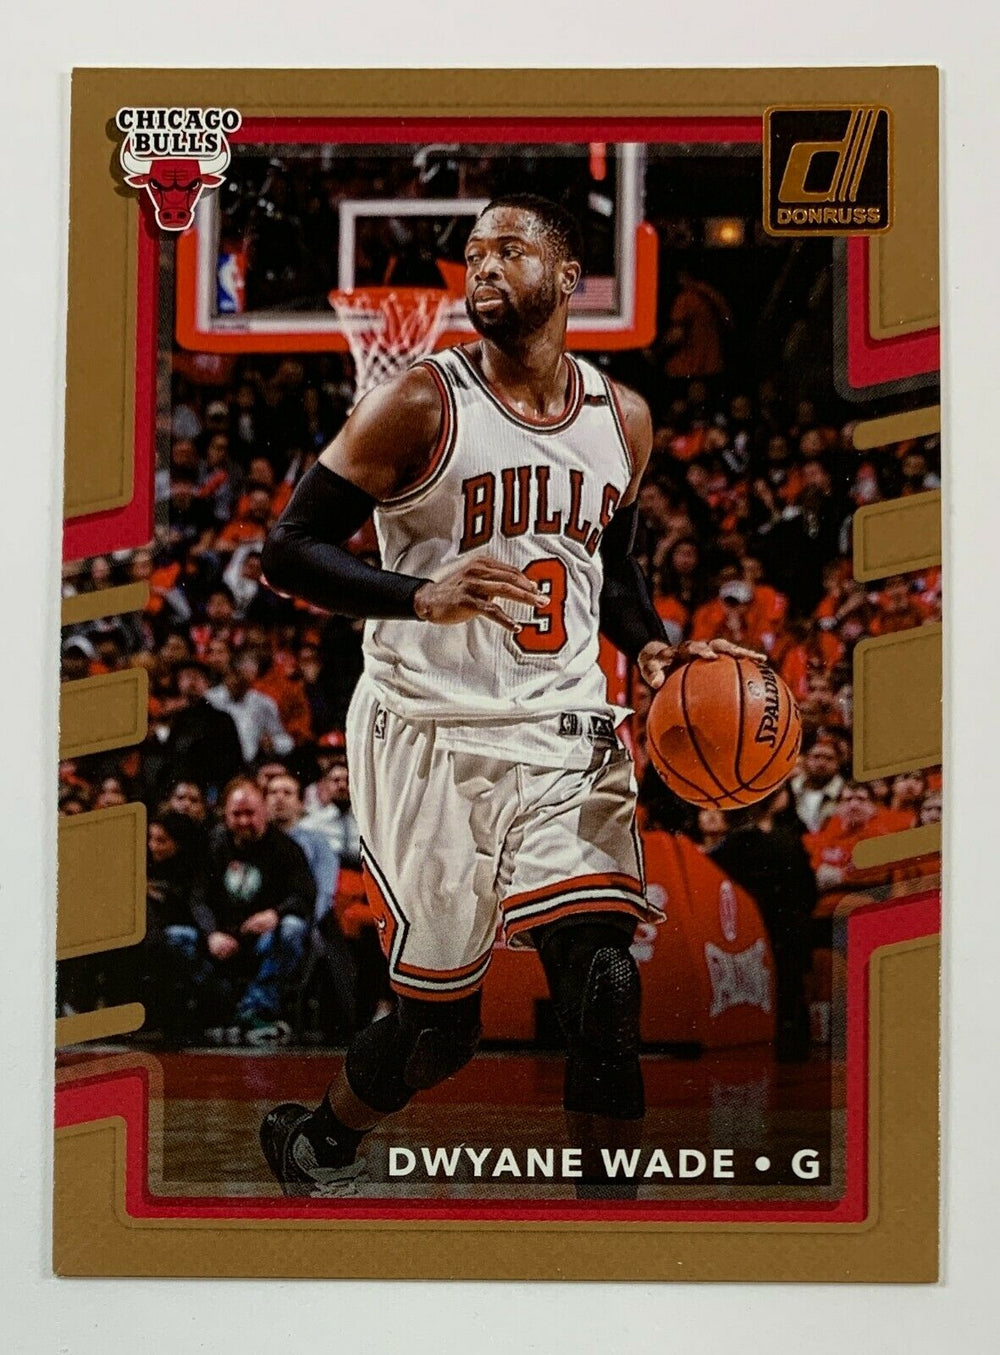 Dwyane Wade 2017 2018 Panini Donruss Series Mint Card #25